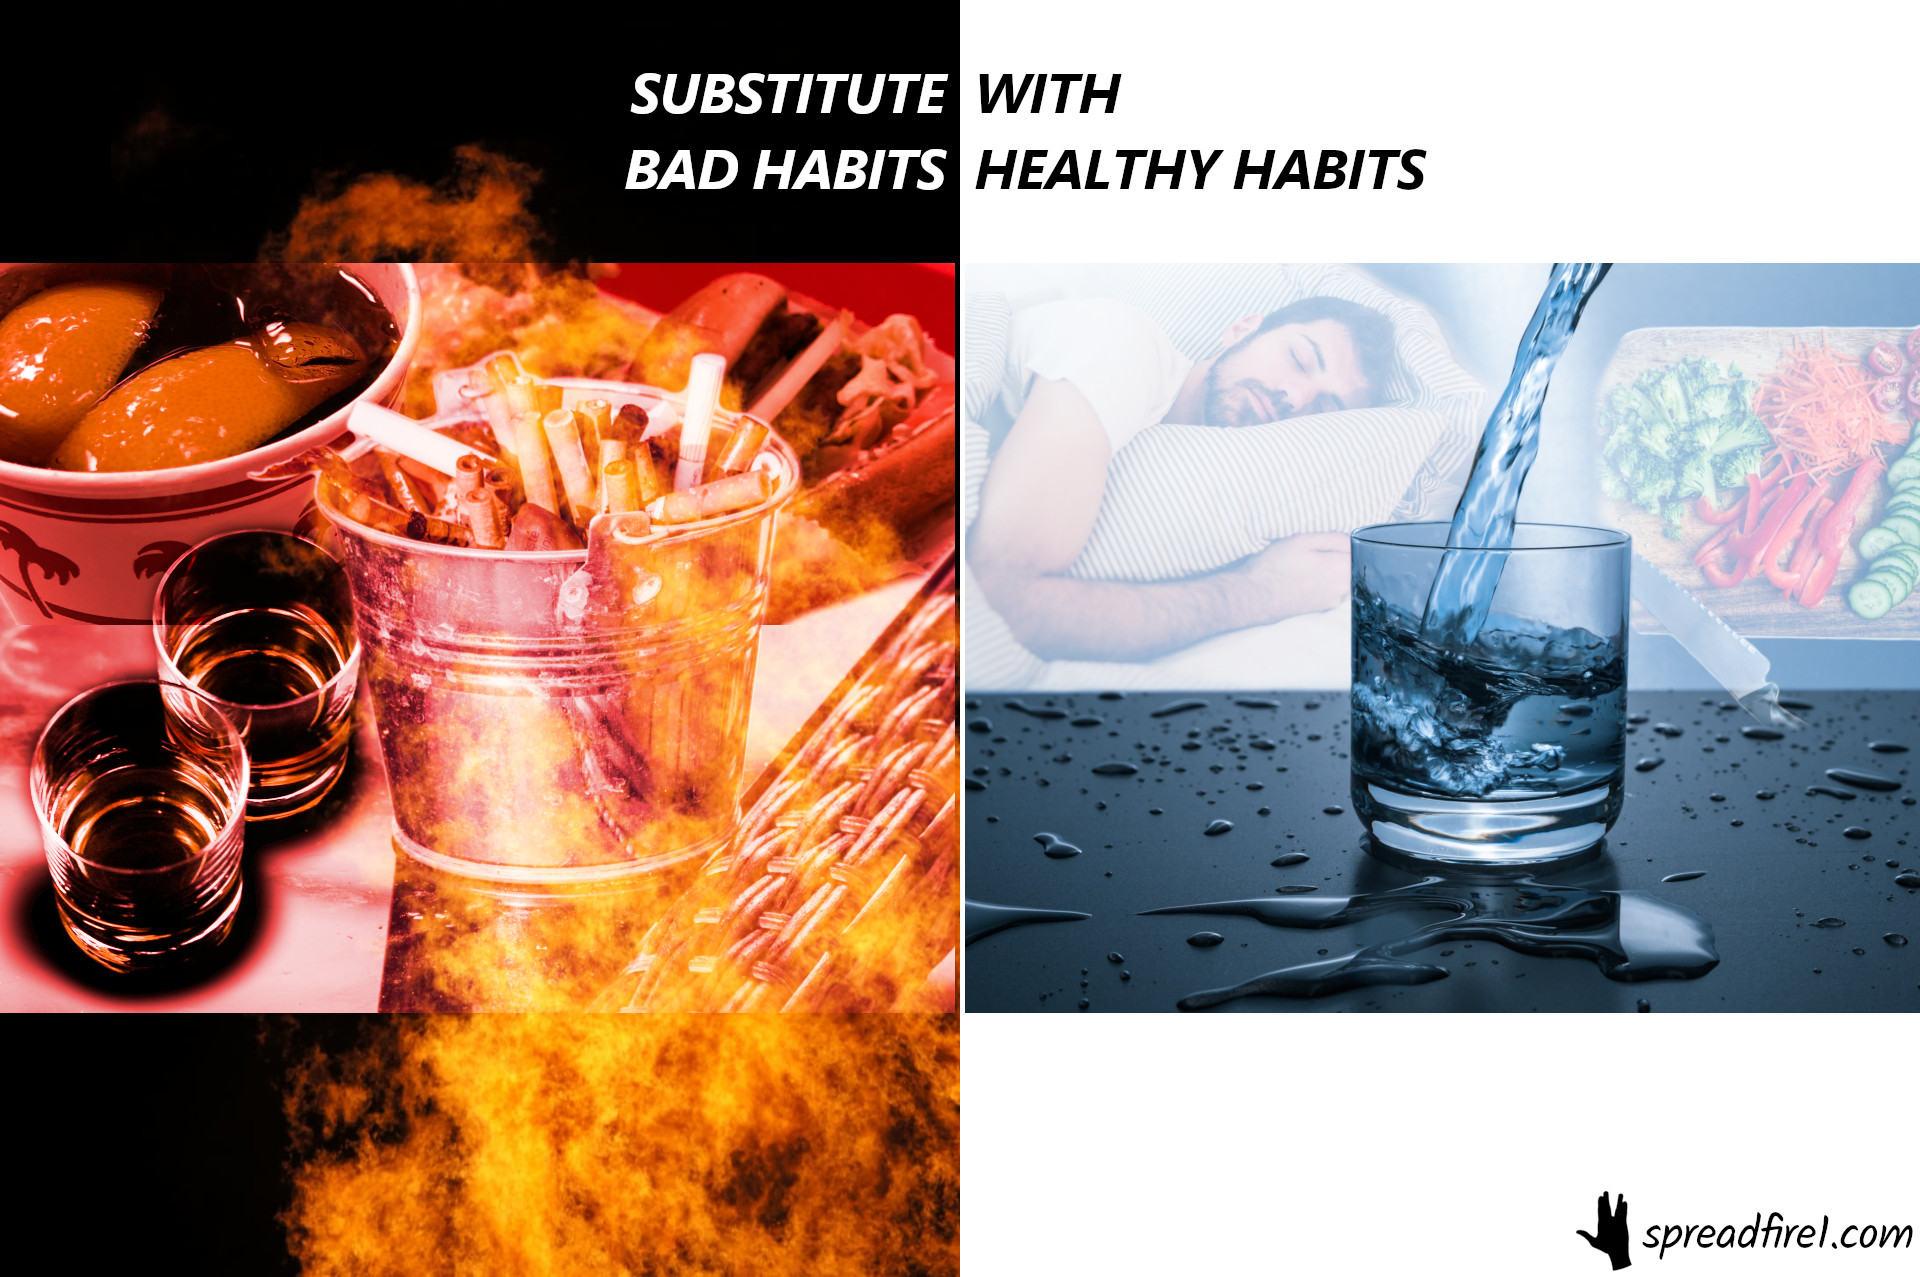 substitute bad habits with healthy habits. bad: alcohol, cigarettes, fast food. good: sleep, water, nutrition, vegetables. spreadfire1.com